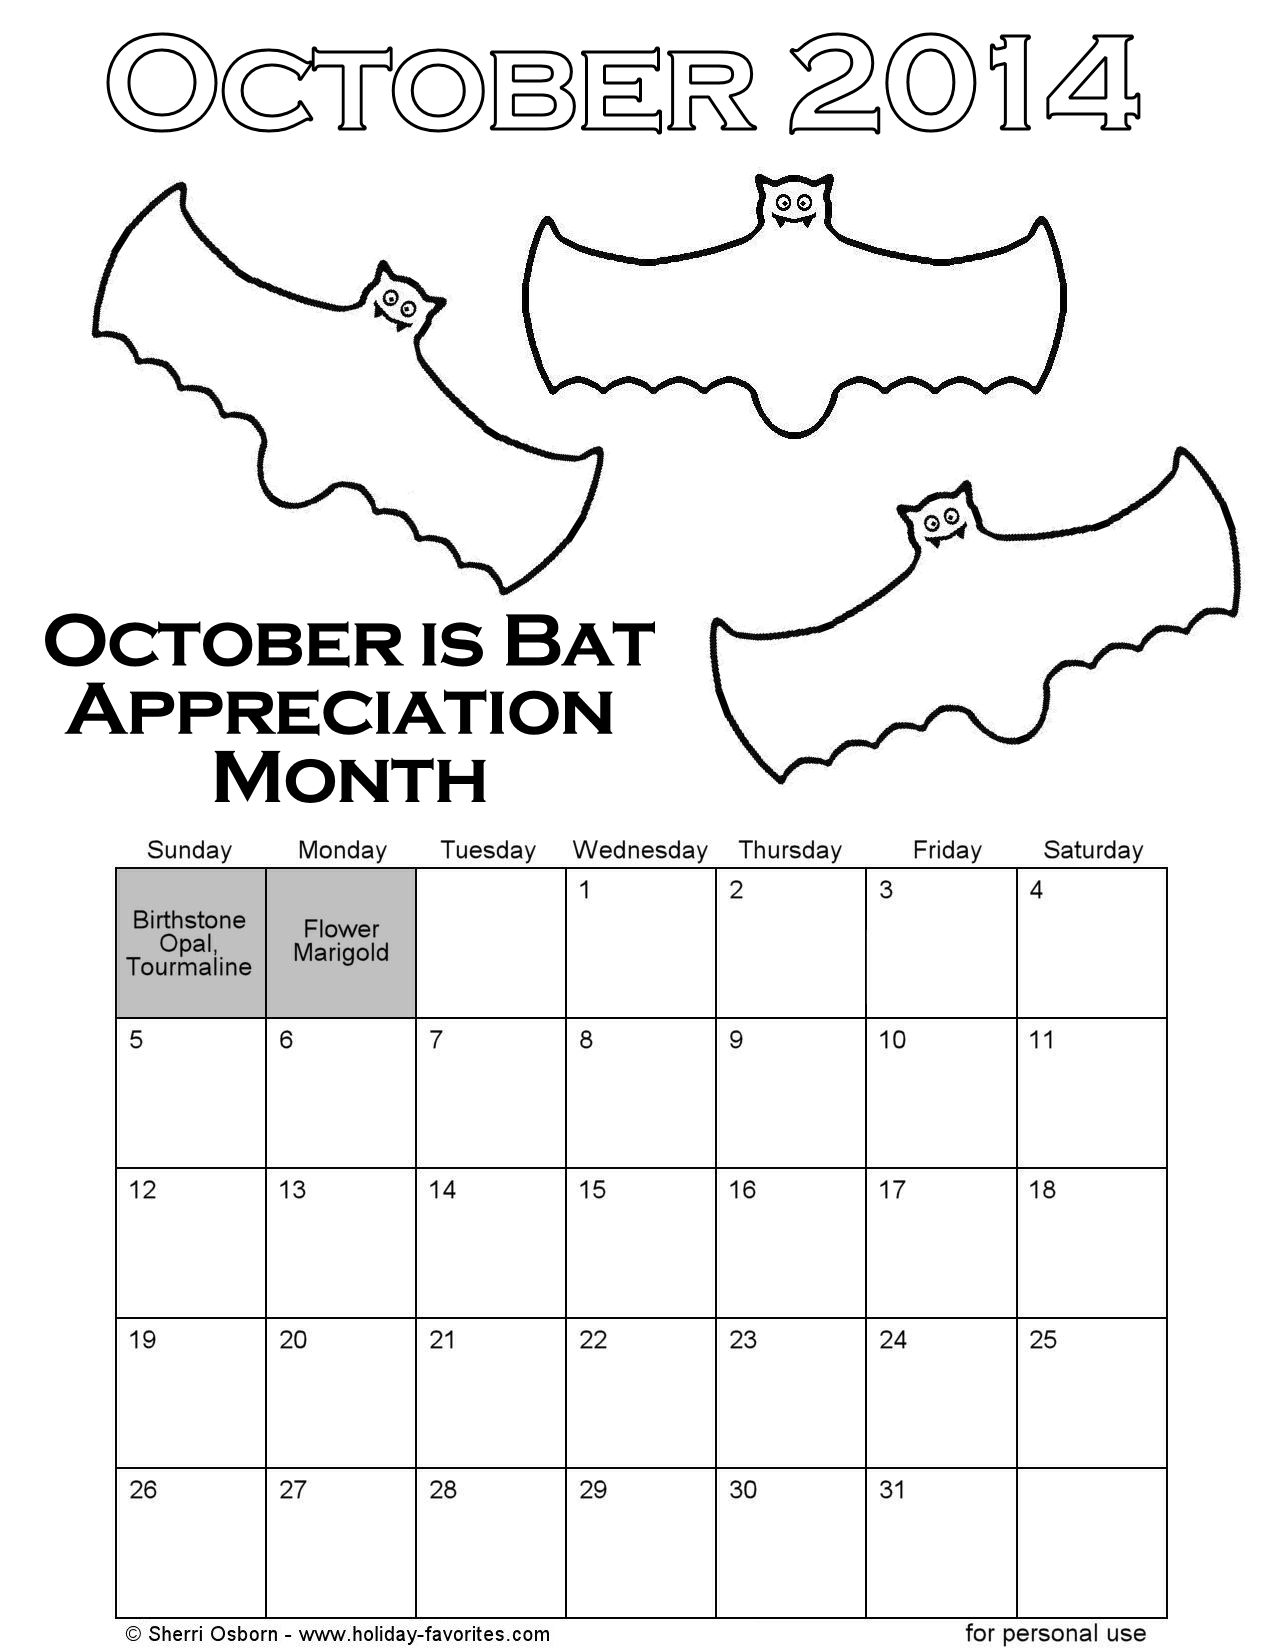 Calendar Symbols Printables : Printable october bat coloring calendar page